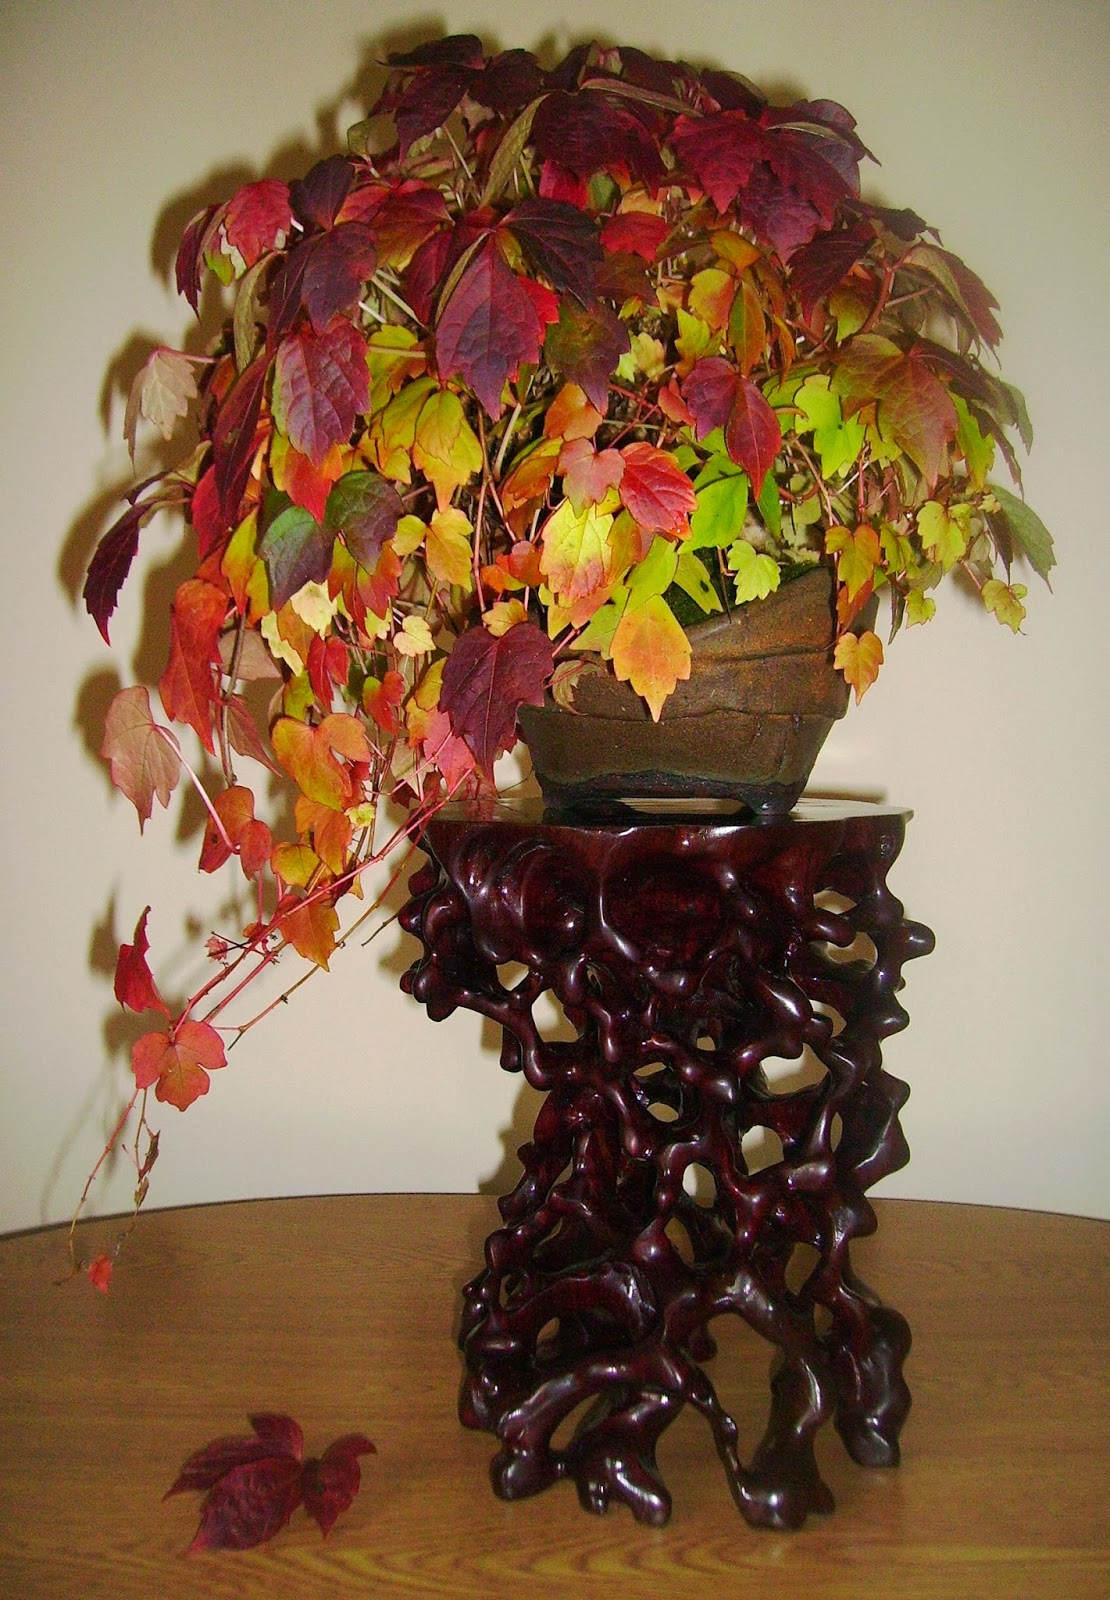 Bespoke Bonsai Stands Autumn Colour On My Boston Ivy